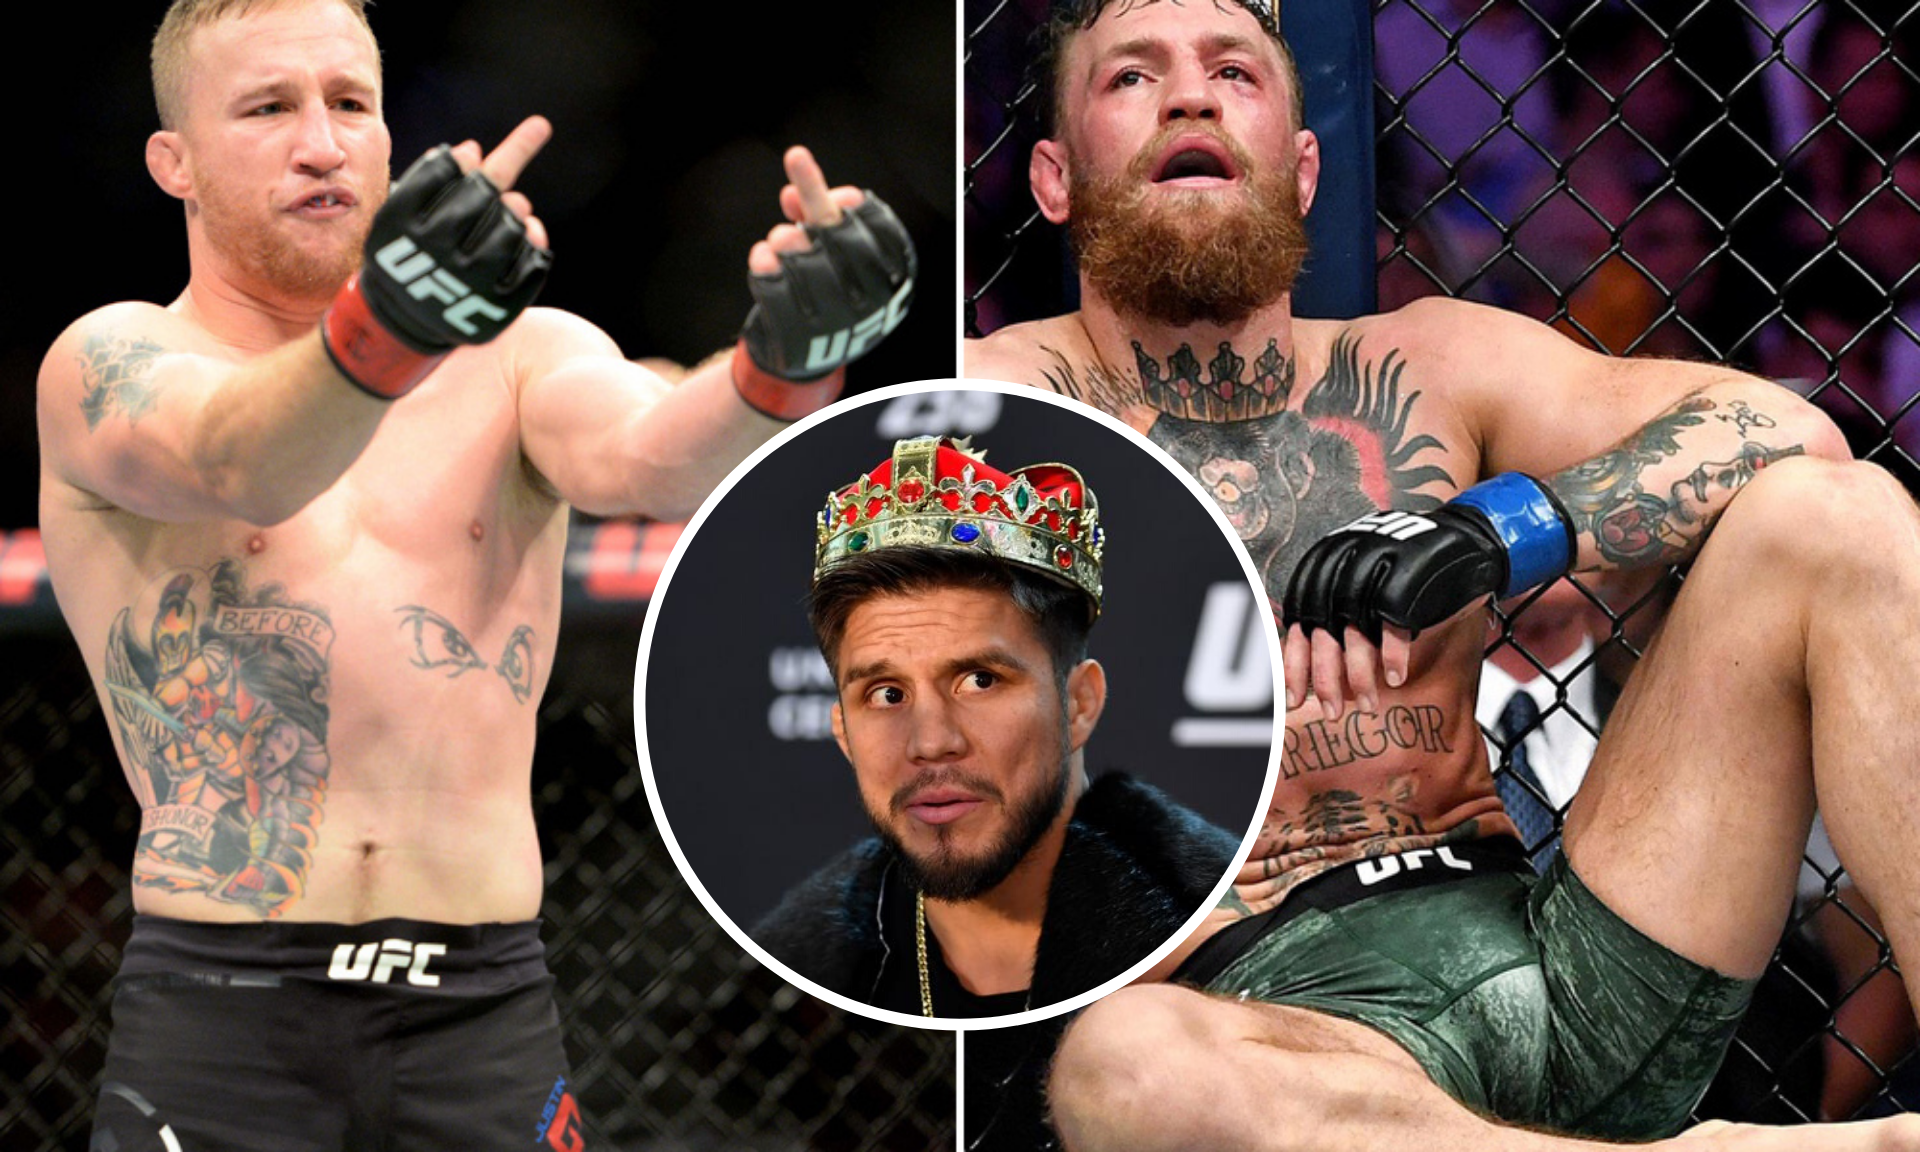 Triple C puts Conor McGregor on notice for Justin Gaethje fight; says 'McTapper' will get destroyed in a round! - Conor